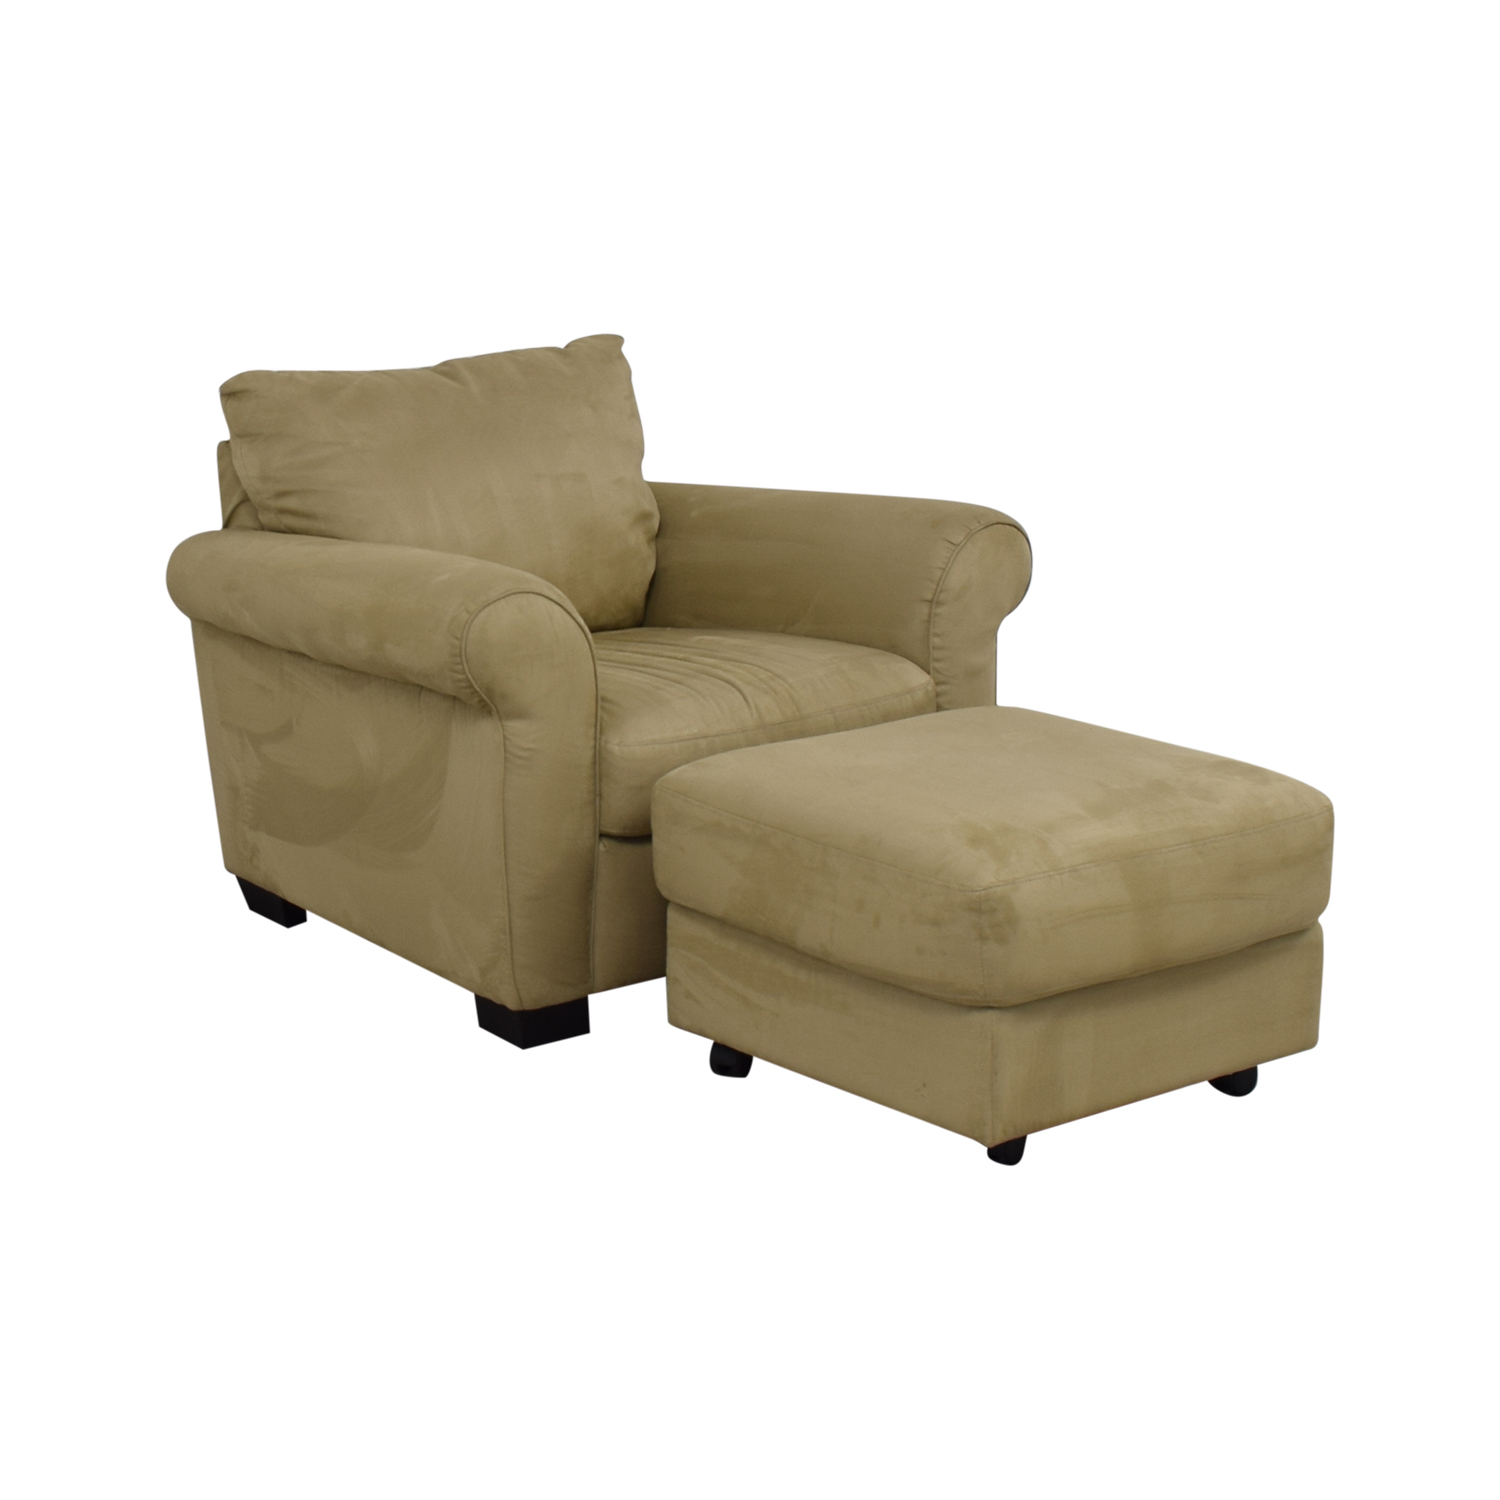 buy Italsofa Microsuede Armchair with Ottoman Italsofa Chairs